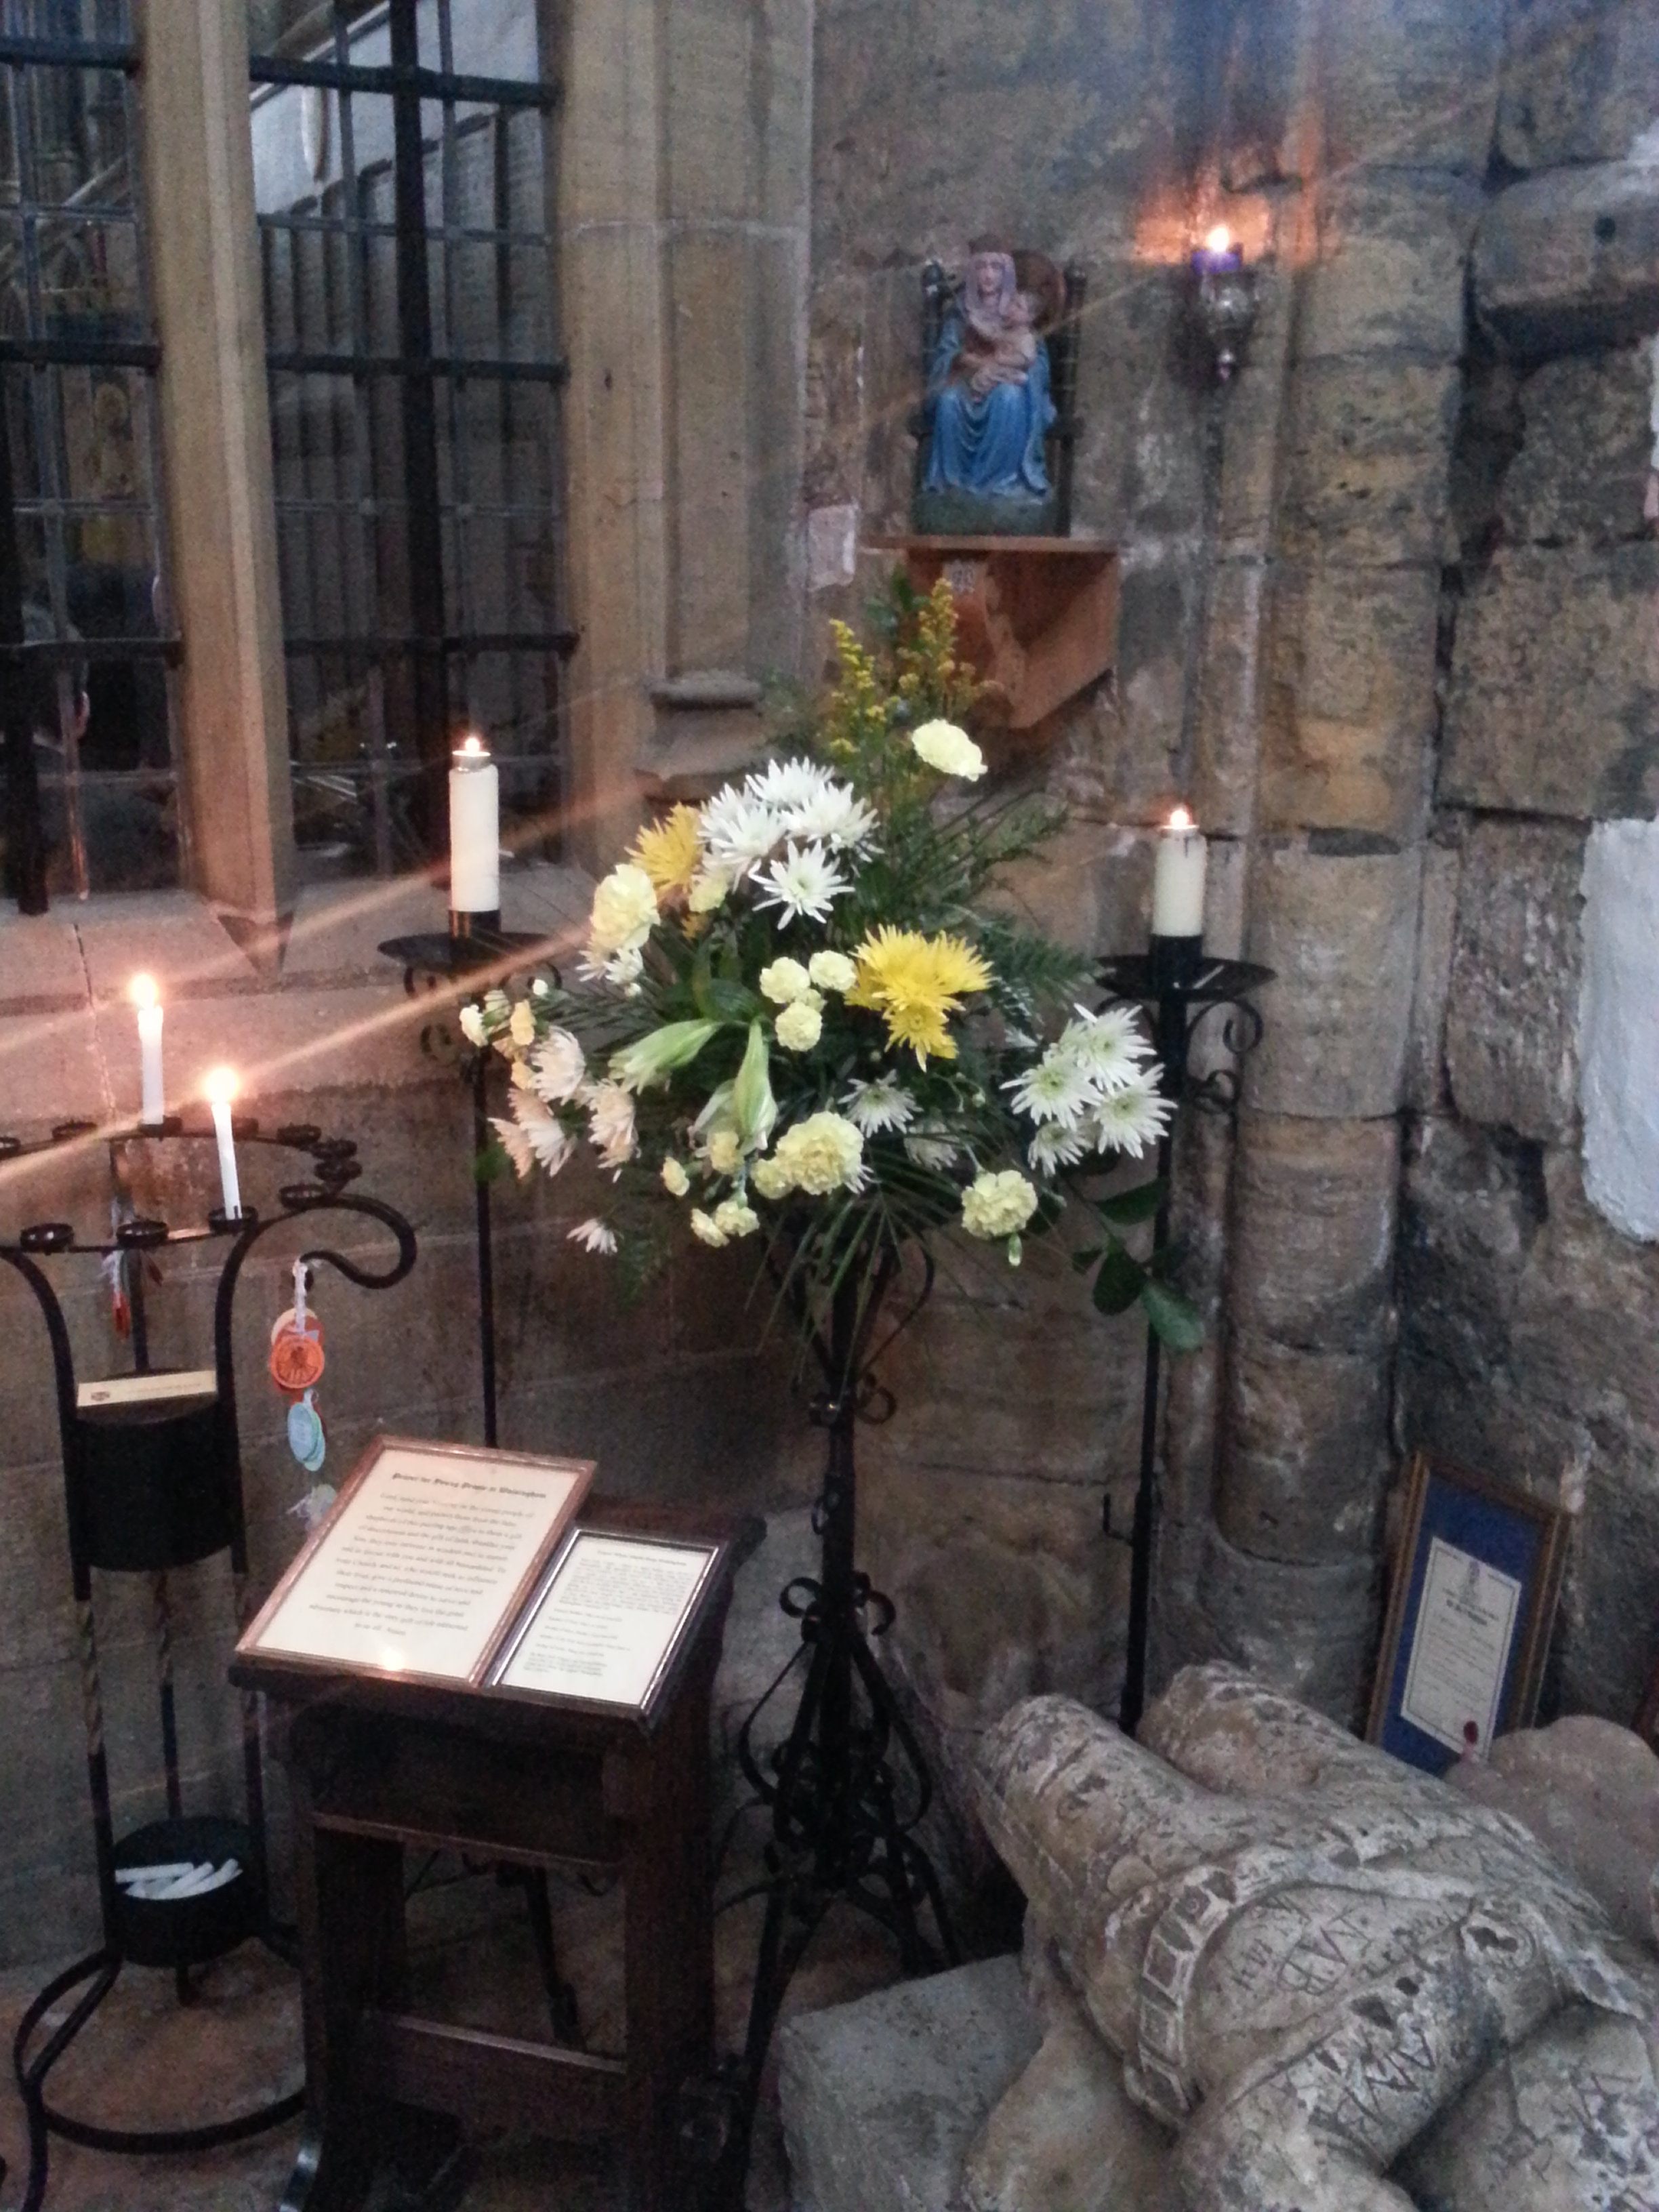 Our Lady of Walsingham & Flower Arrangement